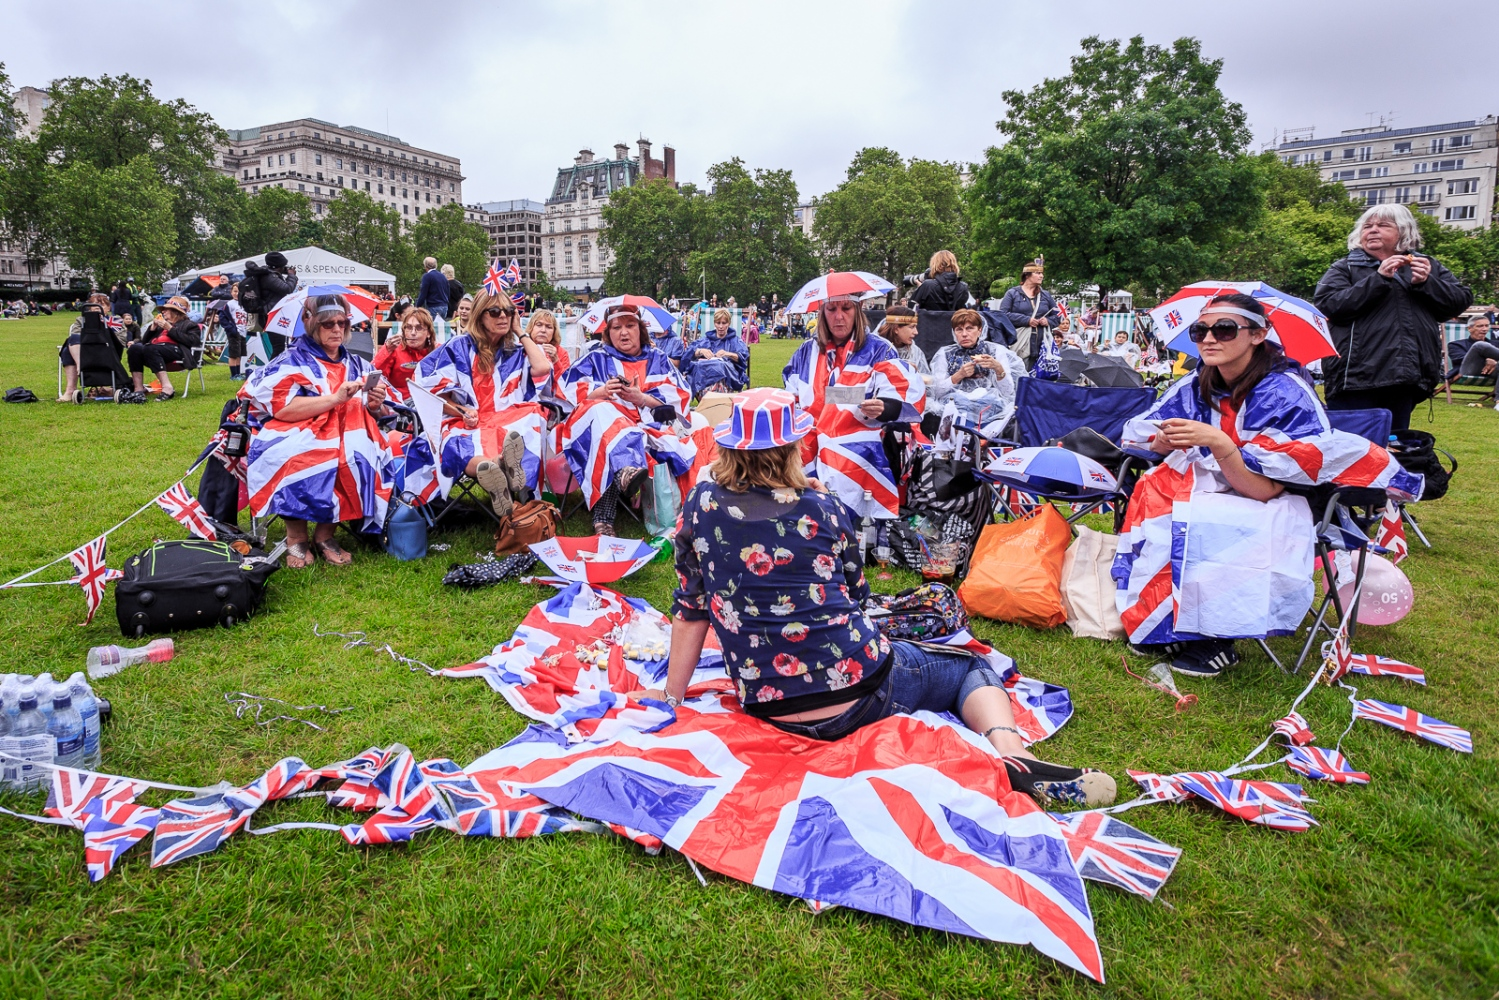 The Patrons Lunch 2016 in London The picnic during the Patrons Lunch 2016